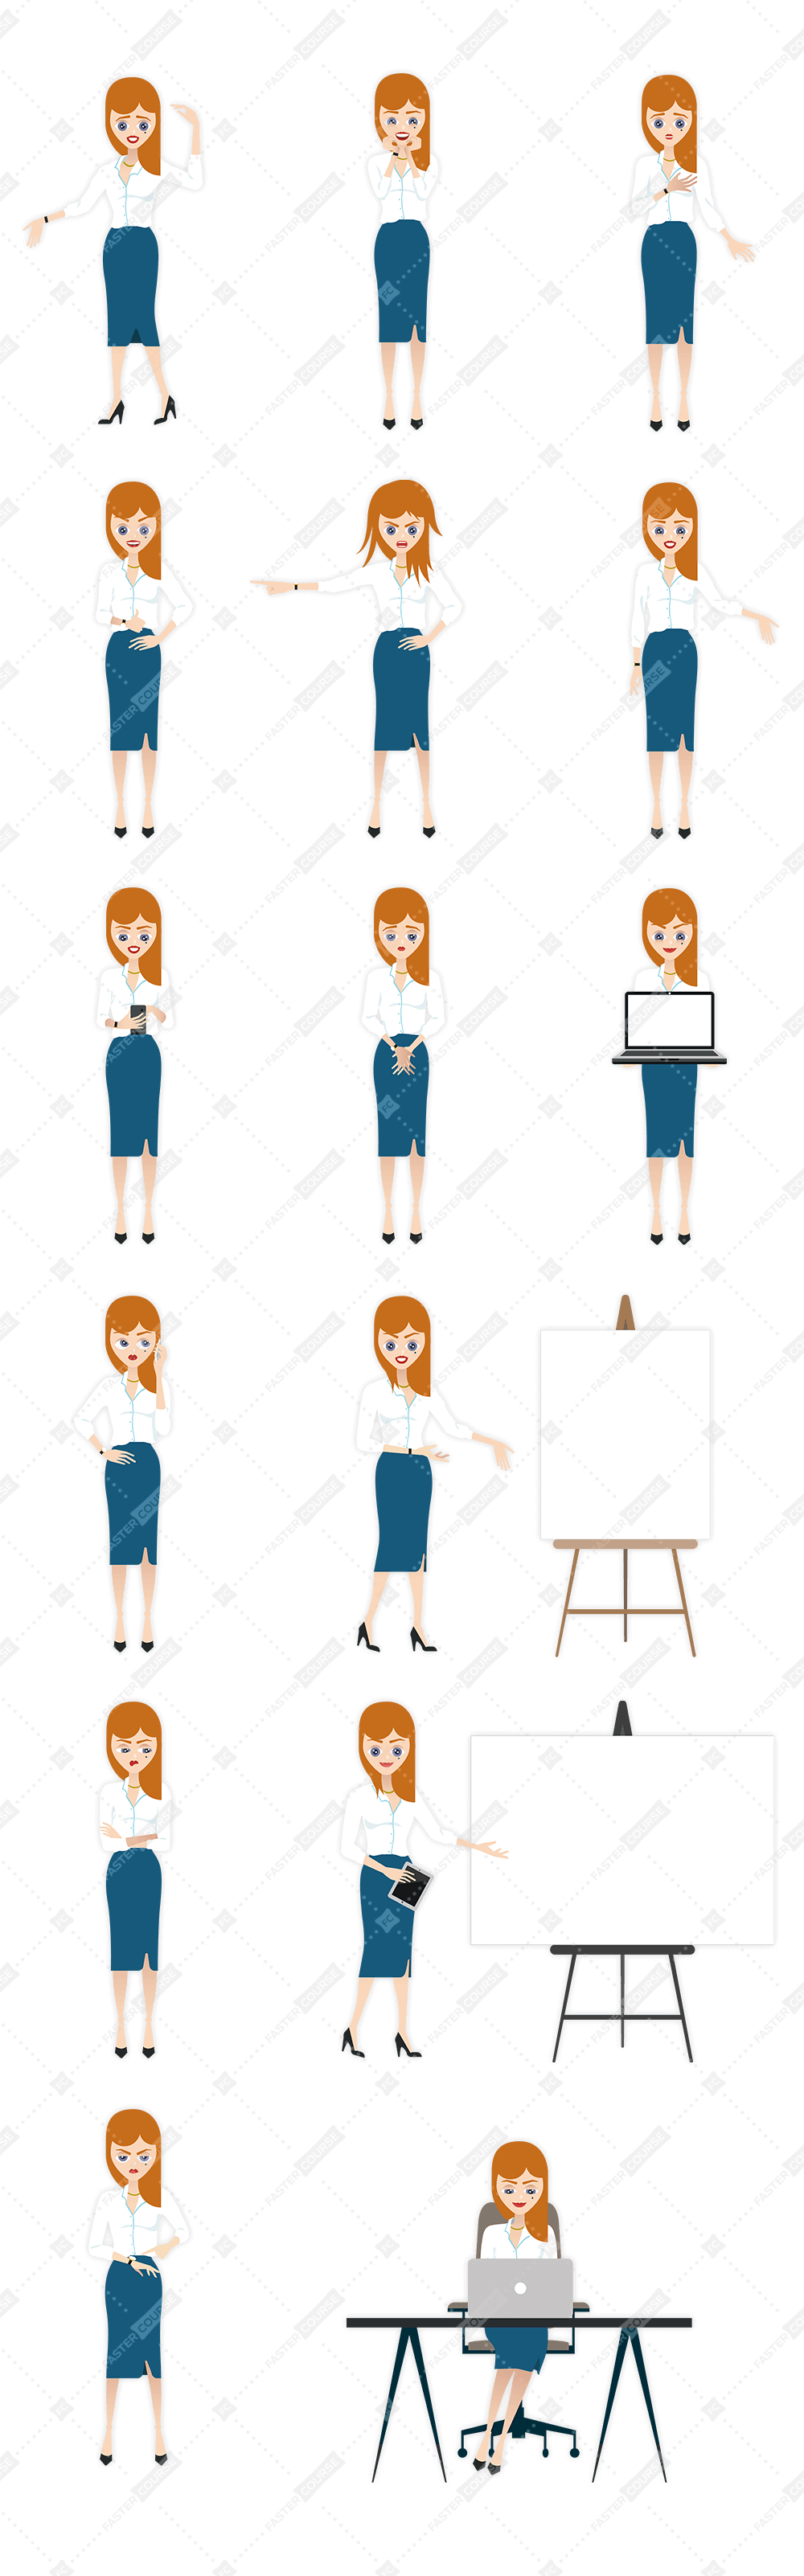 Characters_All_Poses_Office_Mary_wm